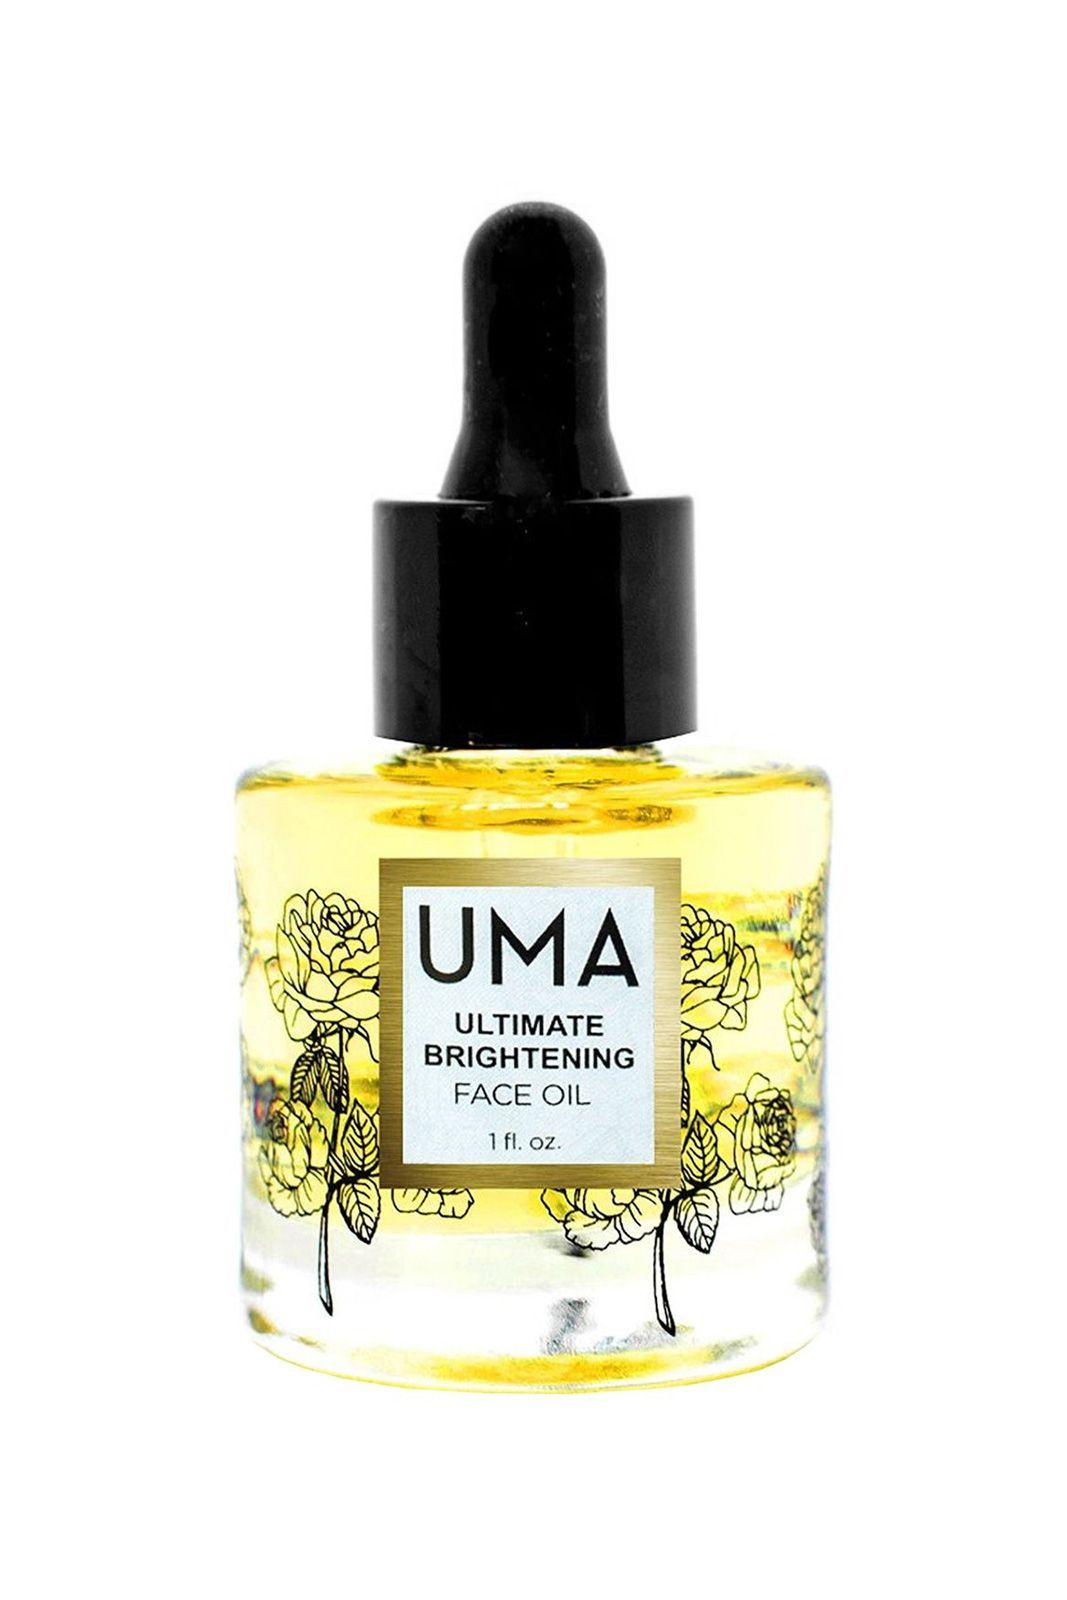 The One Product You Need When Your Face Is A Dry, Flaky Mess #refinery29  http://www.refinery29.com/winter-skin-face-oils#slide-2  For the ultimate in indulgence, try an UMA oil. They are 100% organic and natural, with all of the ingredients harvested on the family estate in India; oils don't get purer than this. Rose oil, one of the main ingredients, retains moisture and helps reduce redness.UMA Ultimate Brightening Face Oil, $150, available at <a…